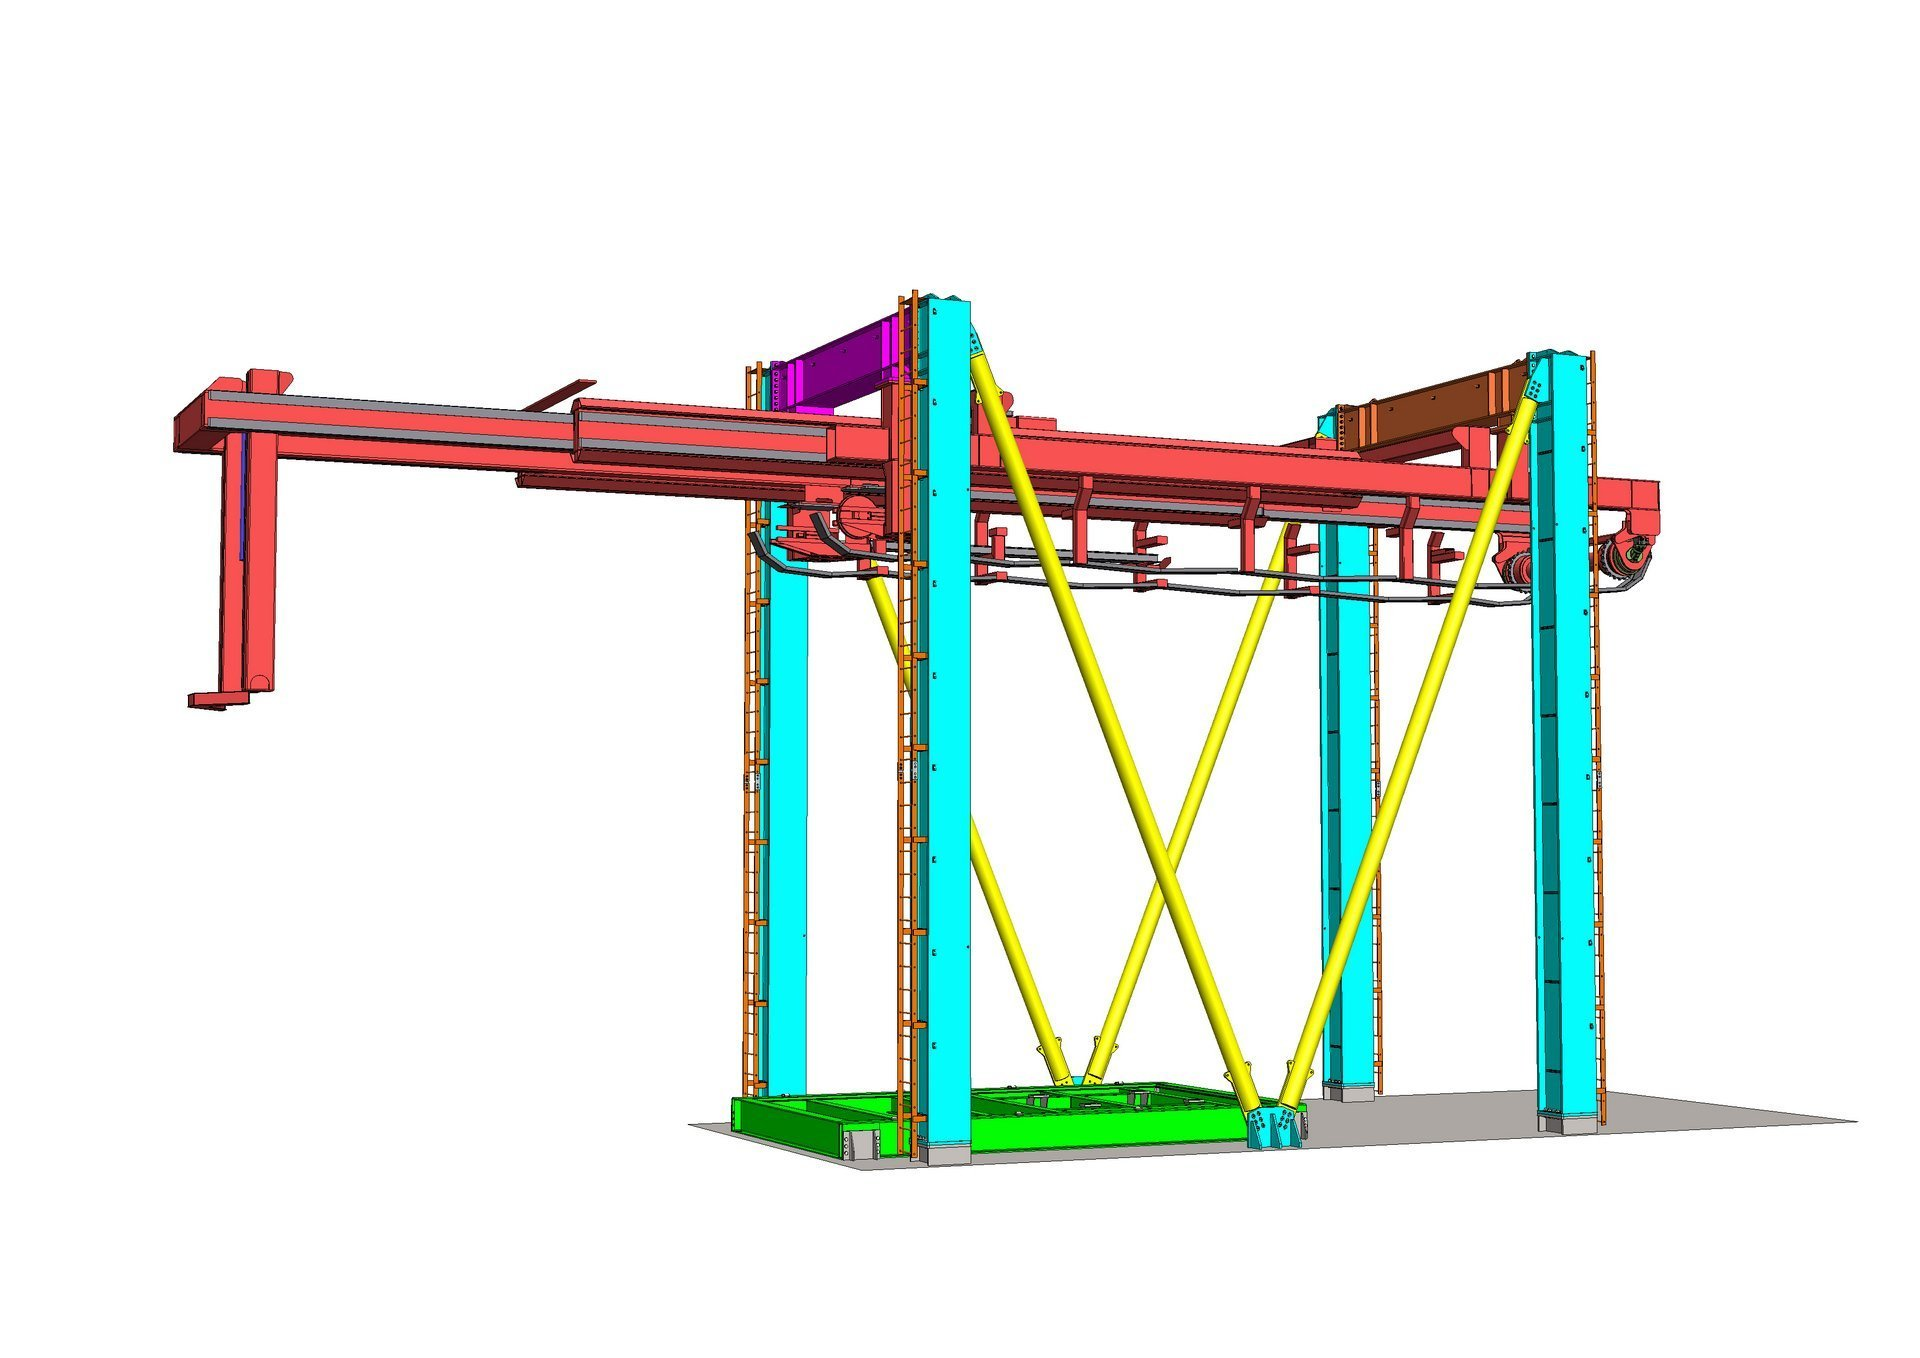 Telescopic crane 3D model